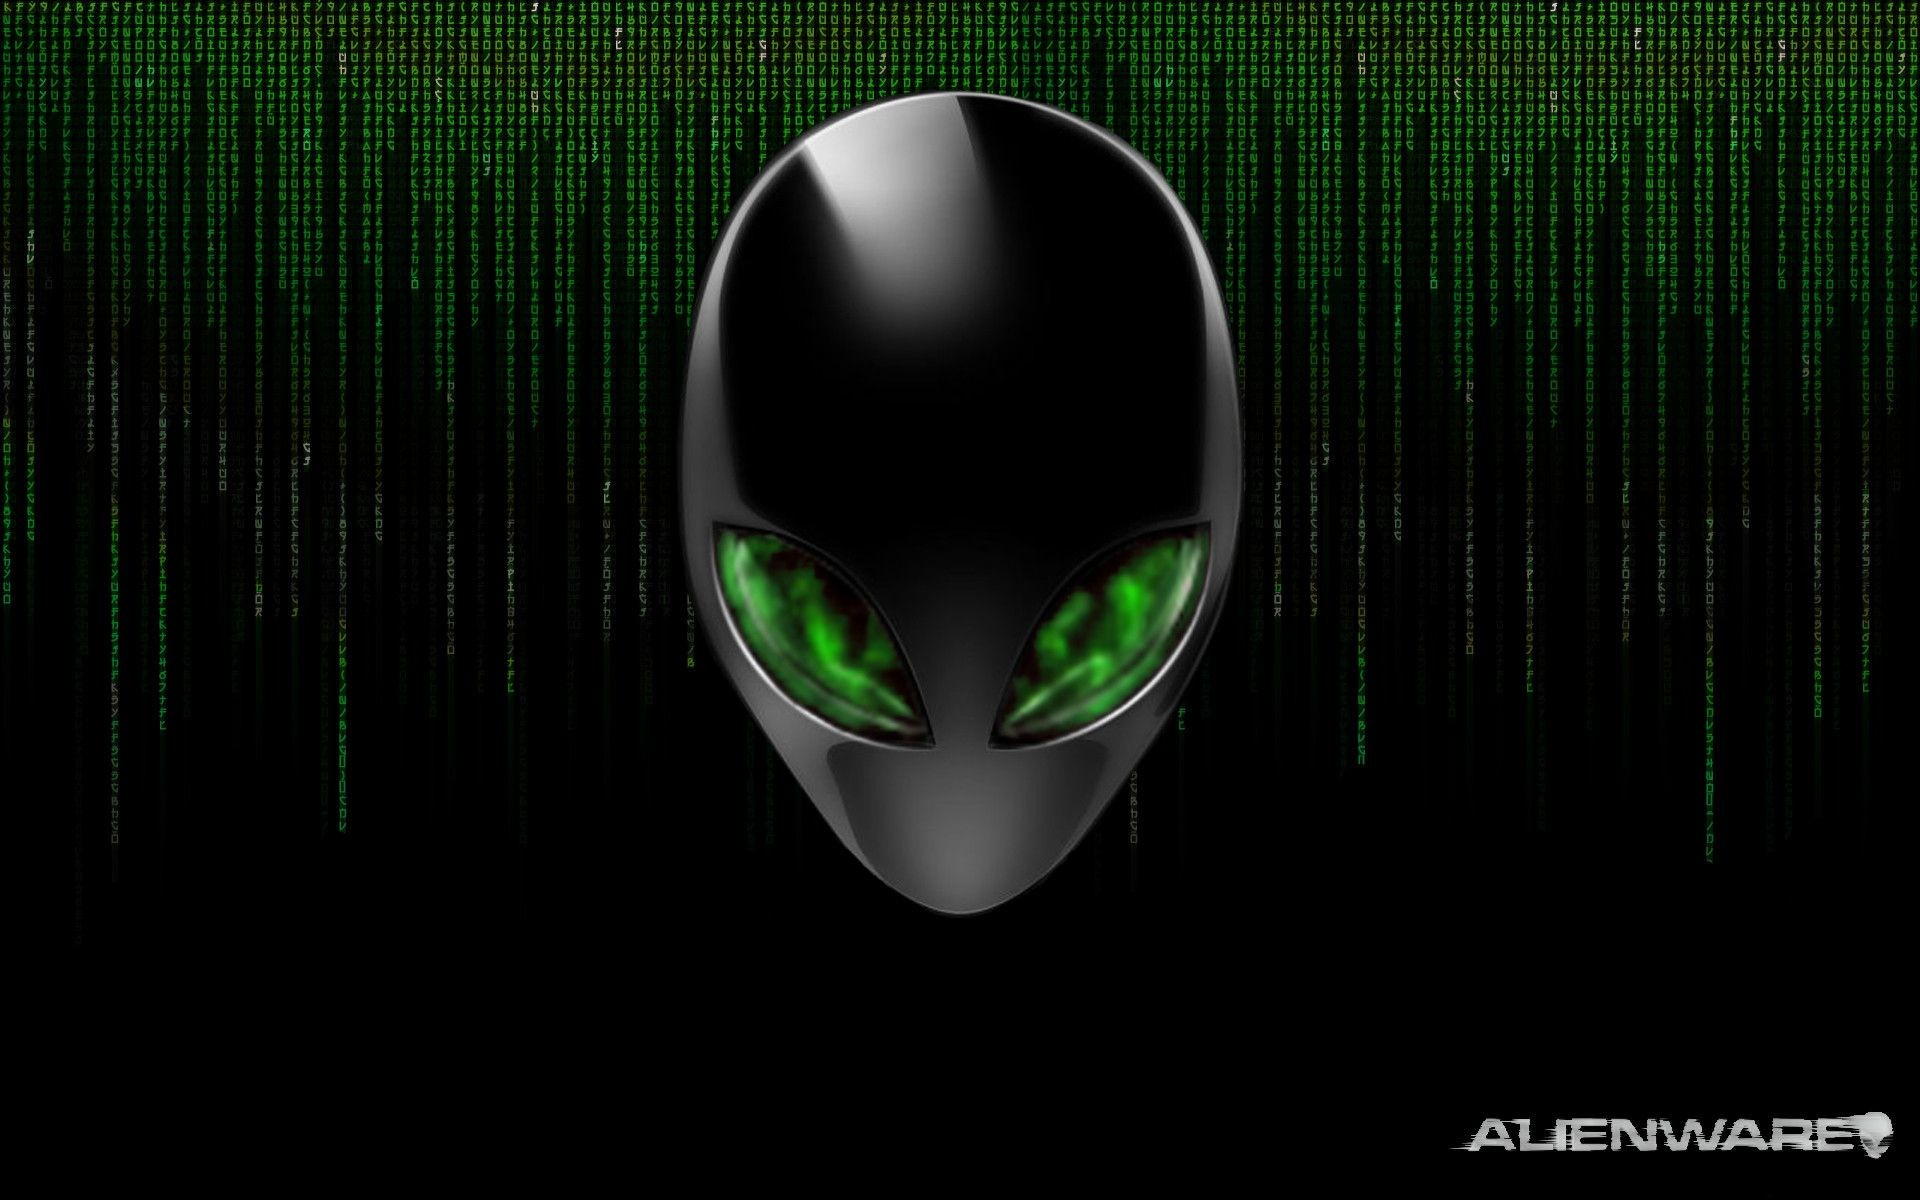 Alienware wallpapers for windows 7 wallpapersafari - 1920x1200 Green Alienware Wallpaper Wallpapersafari